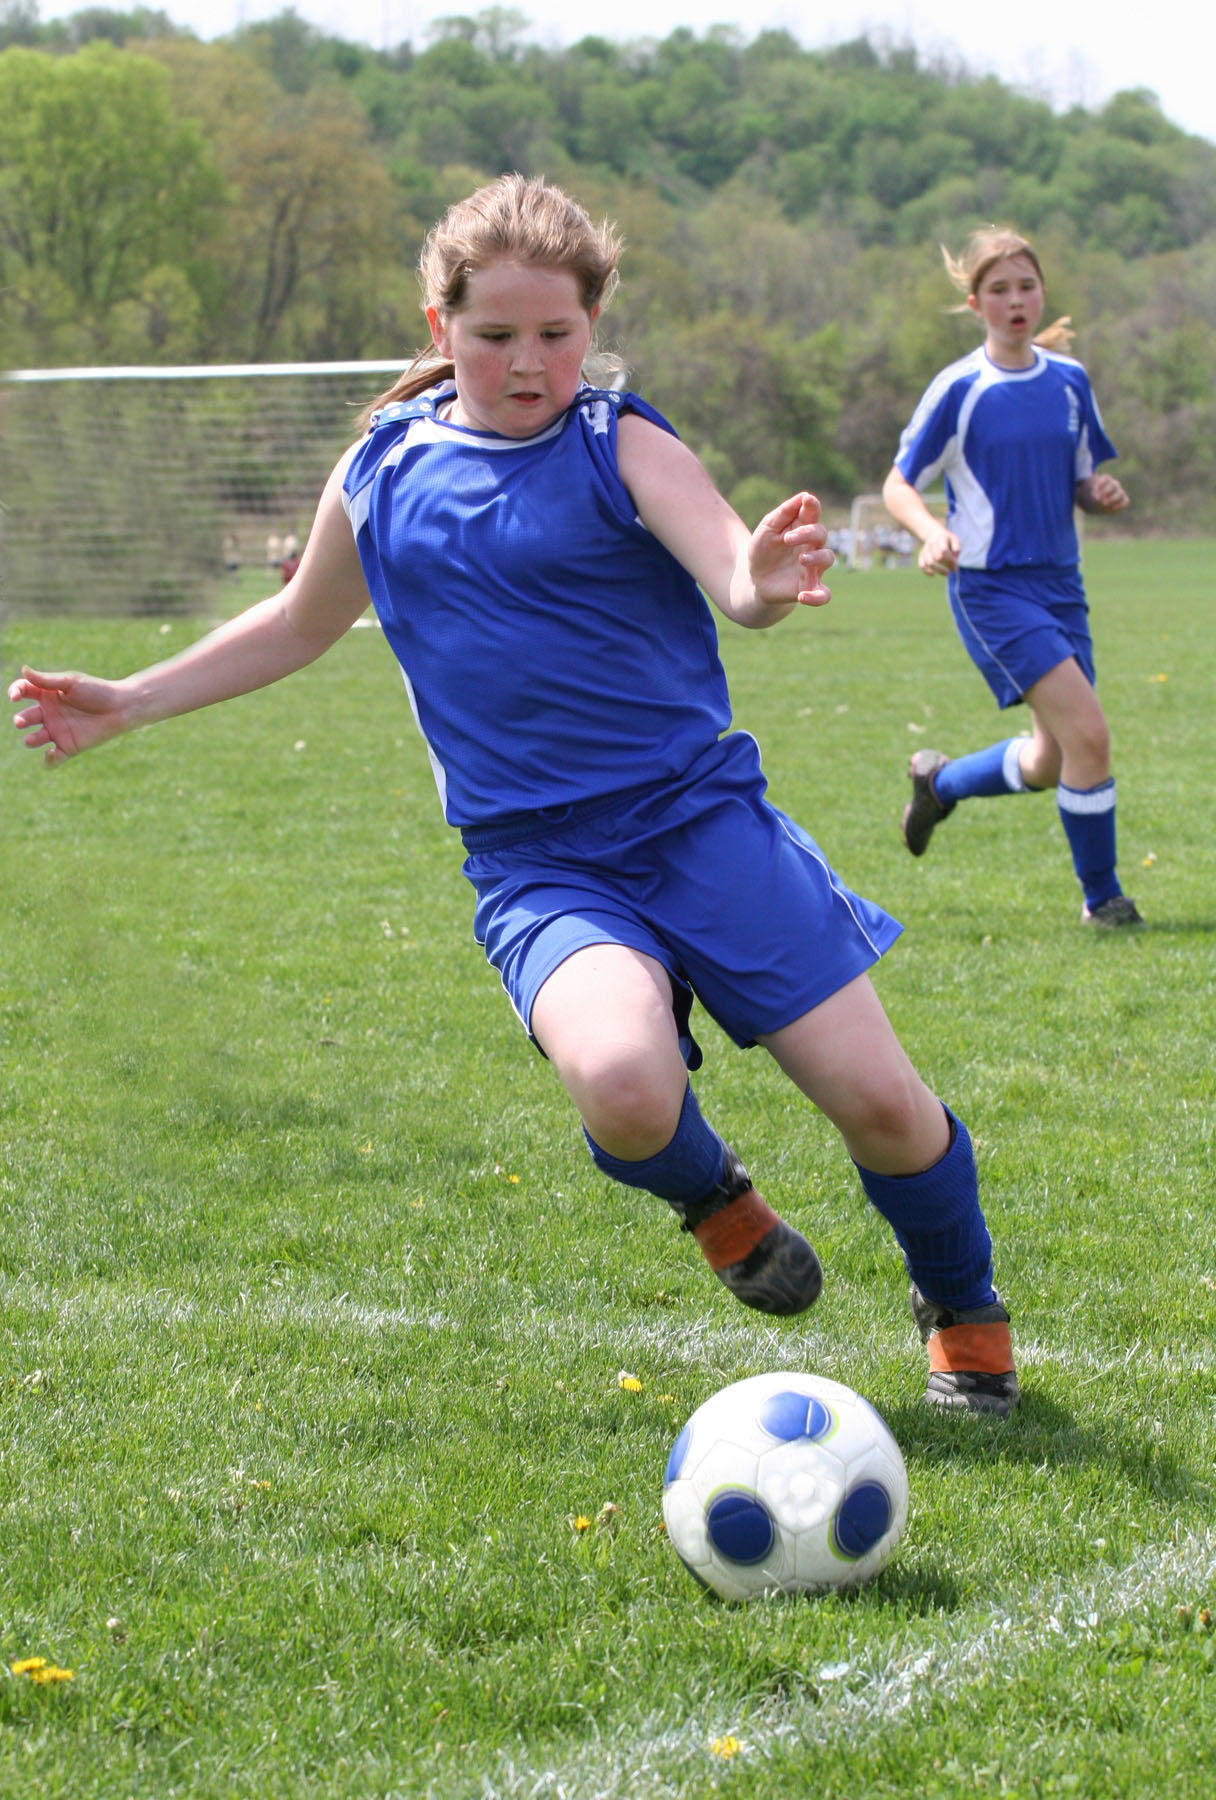 Don't let heel pain slow down your soccer players